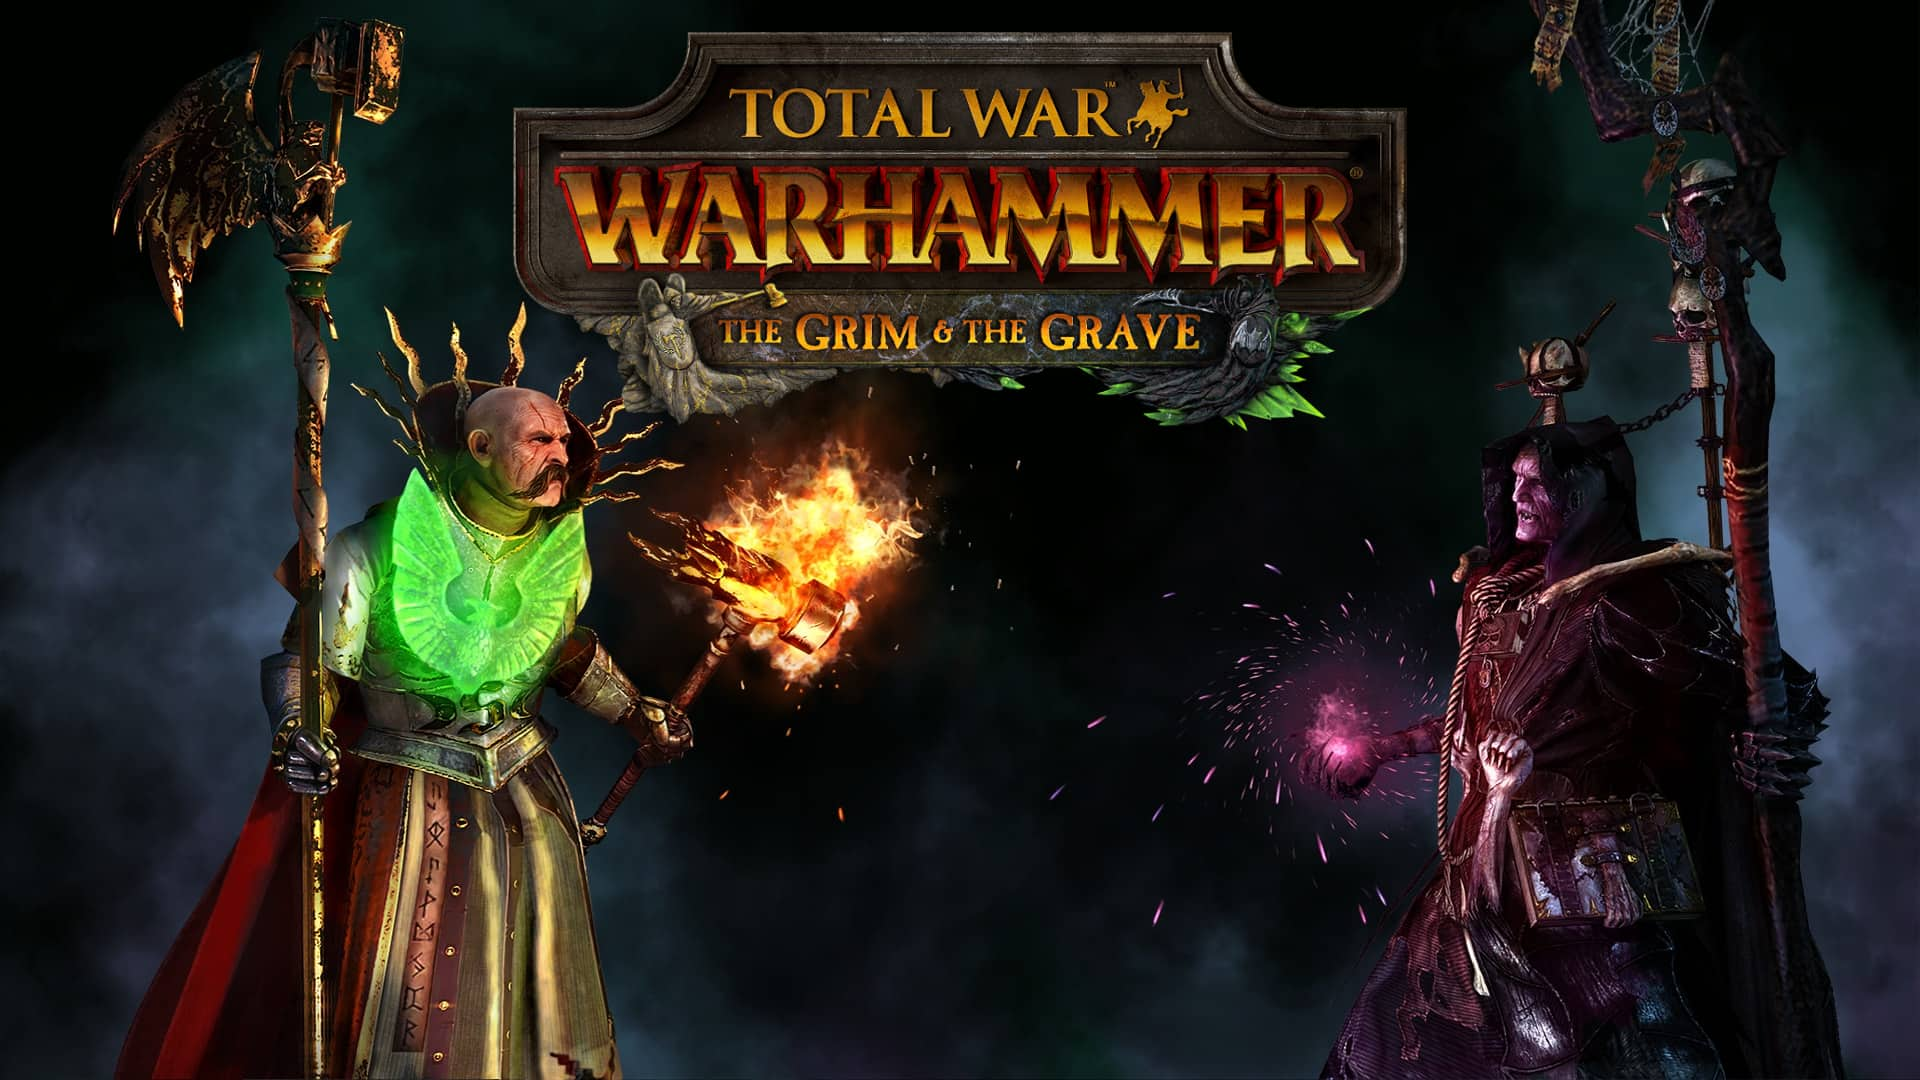 Total War Warhammer The Grim and the Grave immagine in evidenza